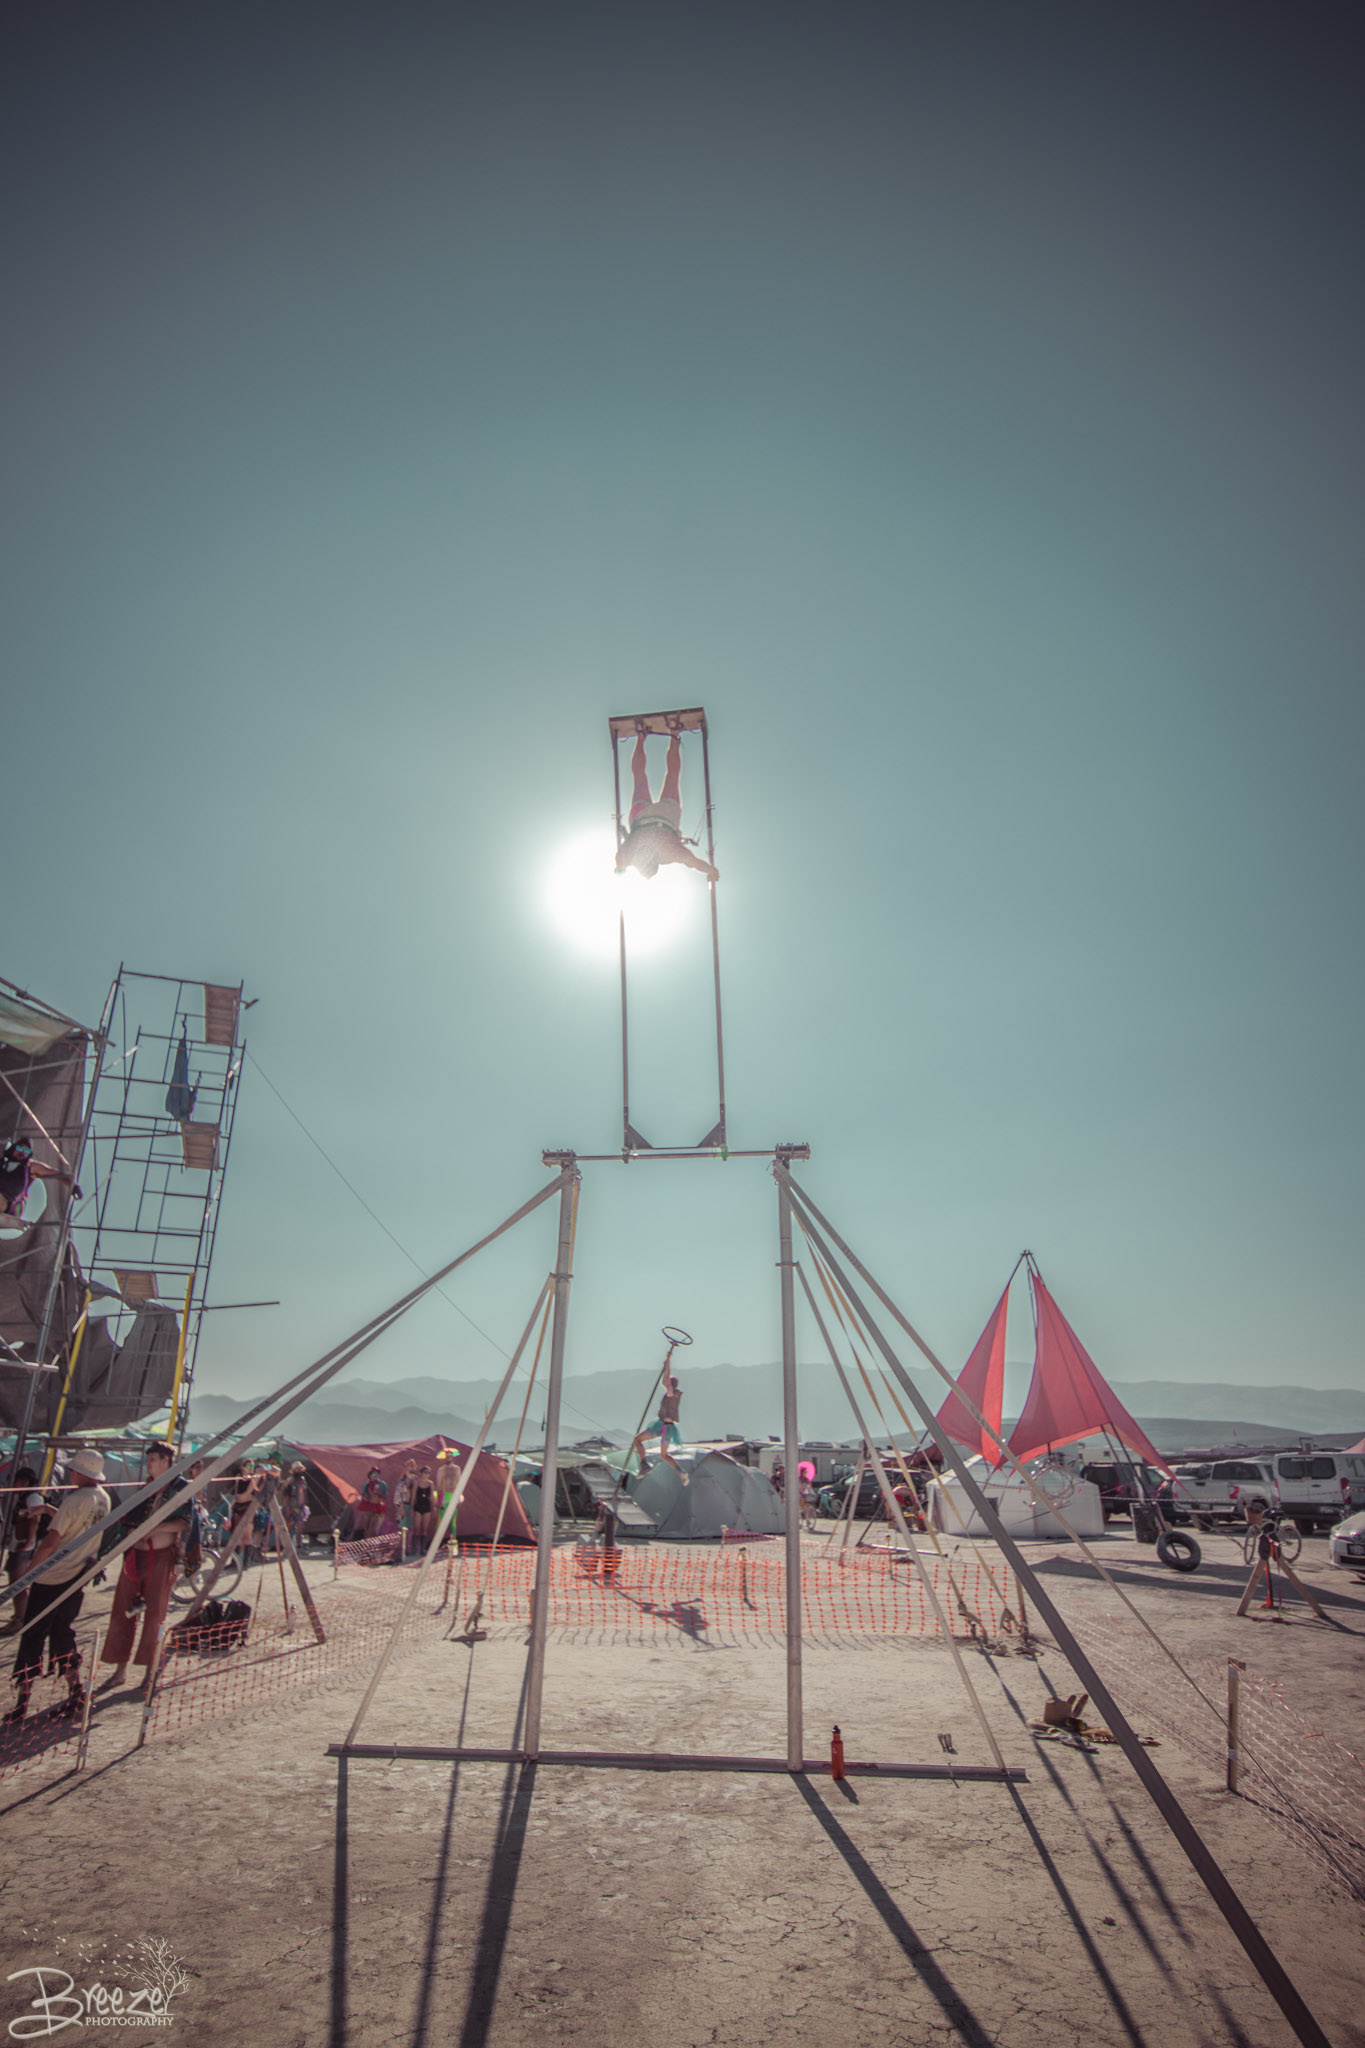 Brie'Ana Breeze Photography & Media - Burning Man 2018-3429.jpg